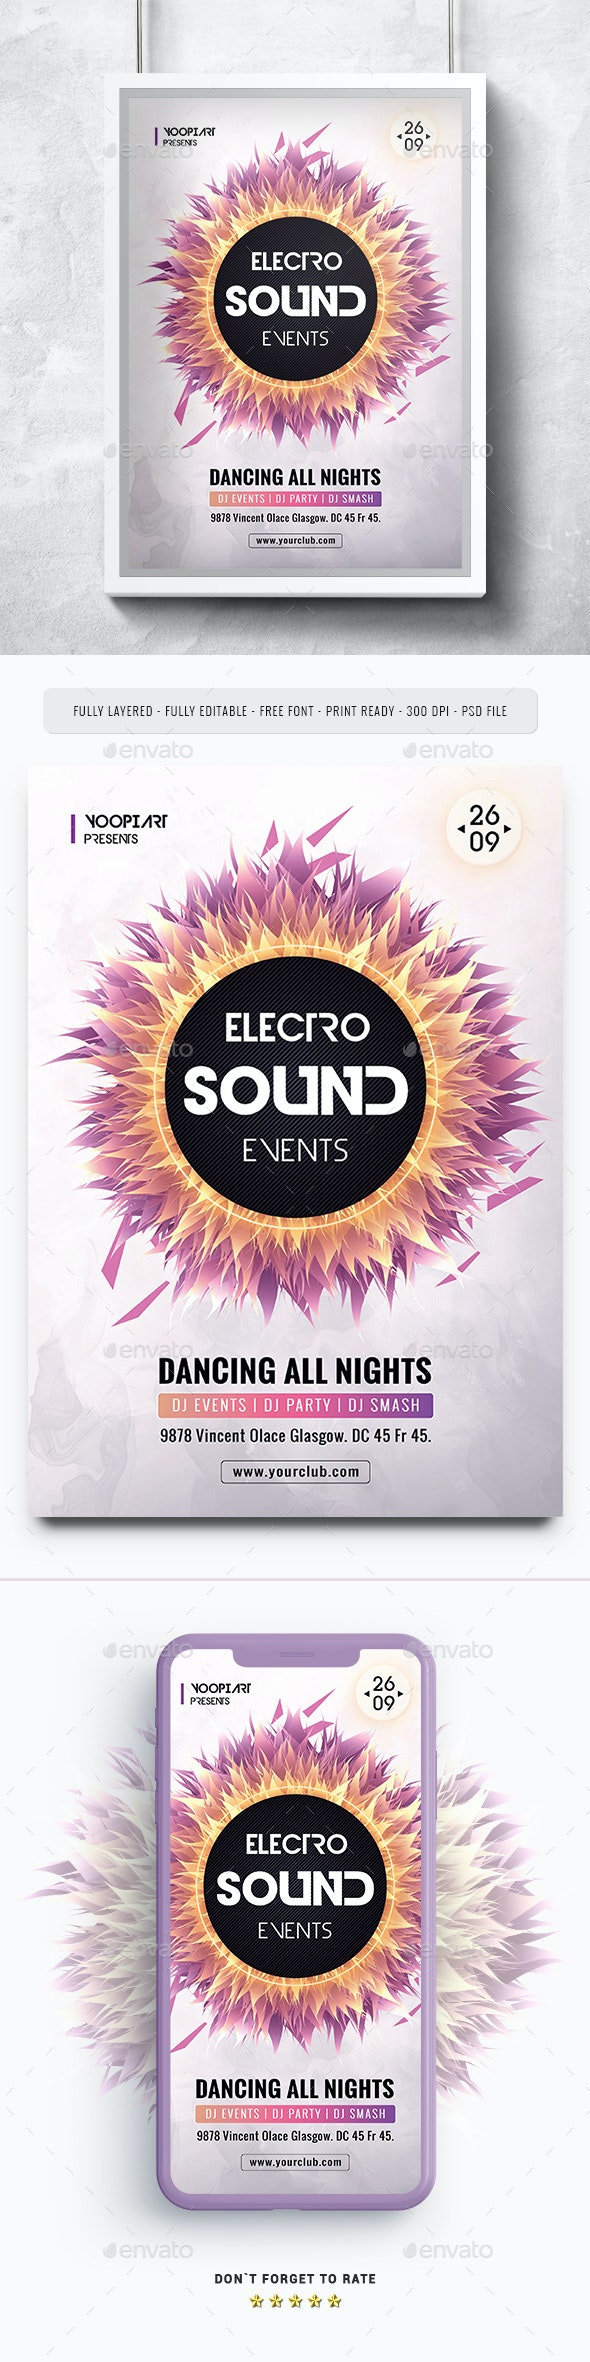 Electro Sound Flyer - Events Flyers